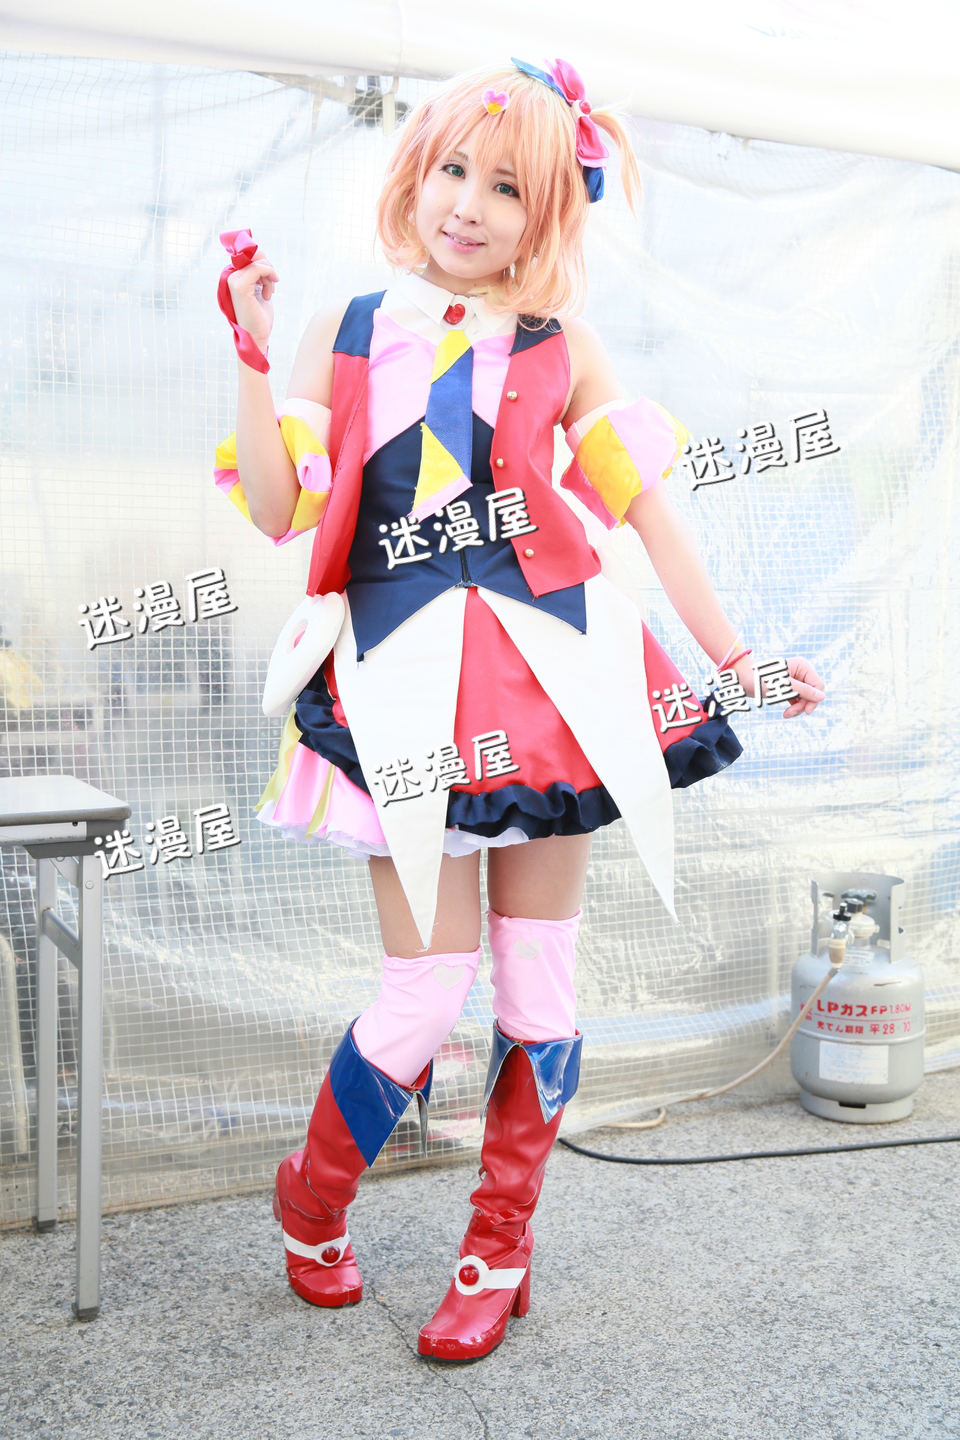 the super Dimension Fortress Macross Freyja Wion cosplay costume party dress